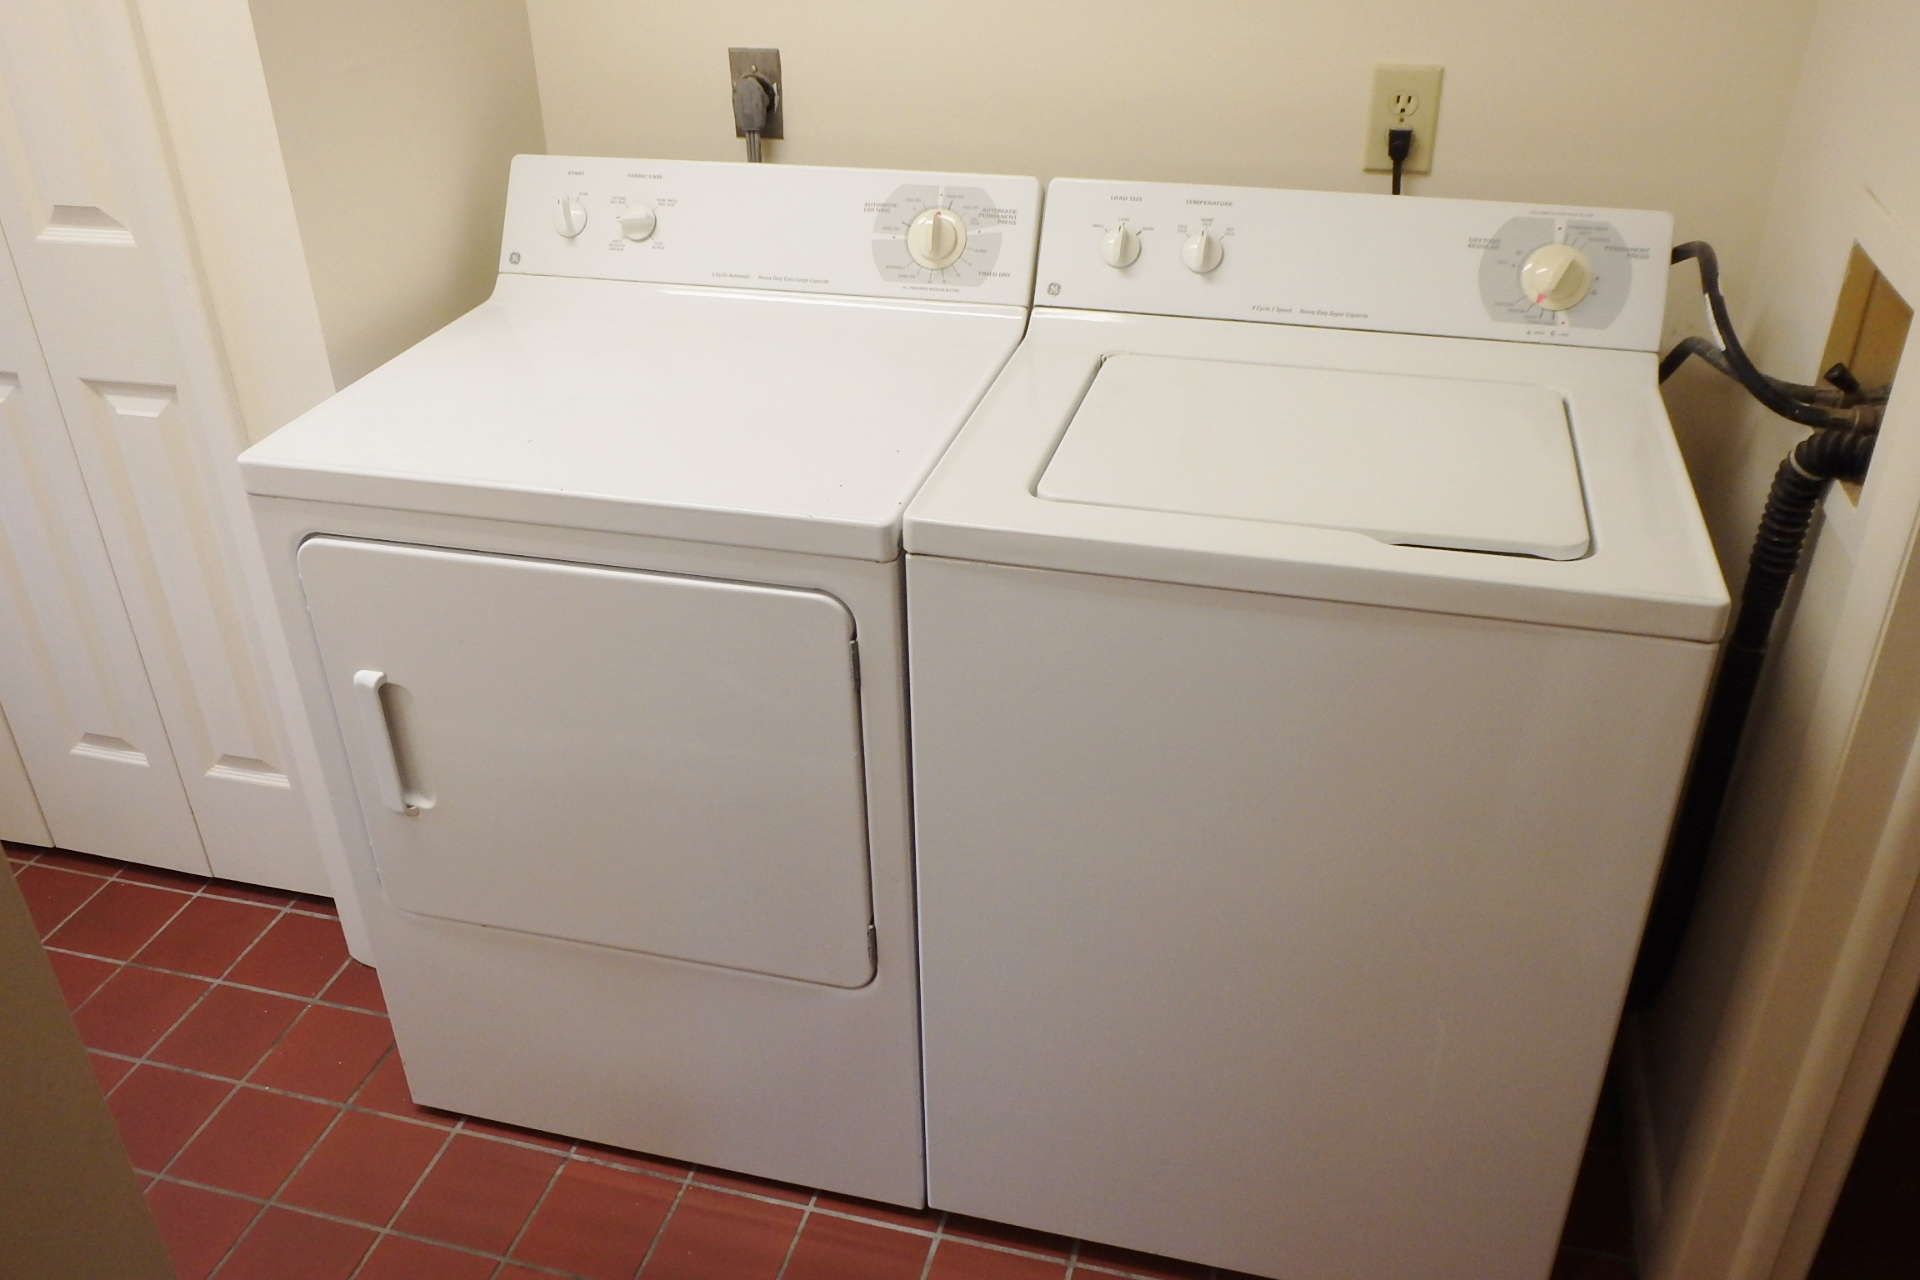 3112 Shellers Bend Laundry